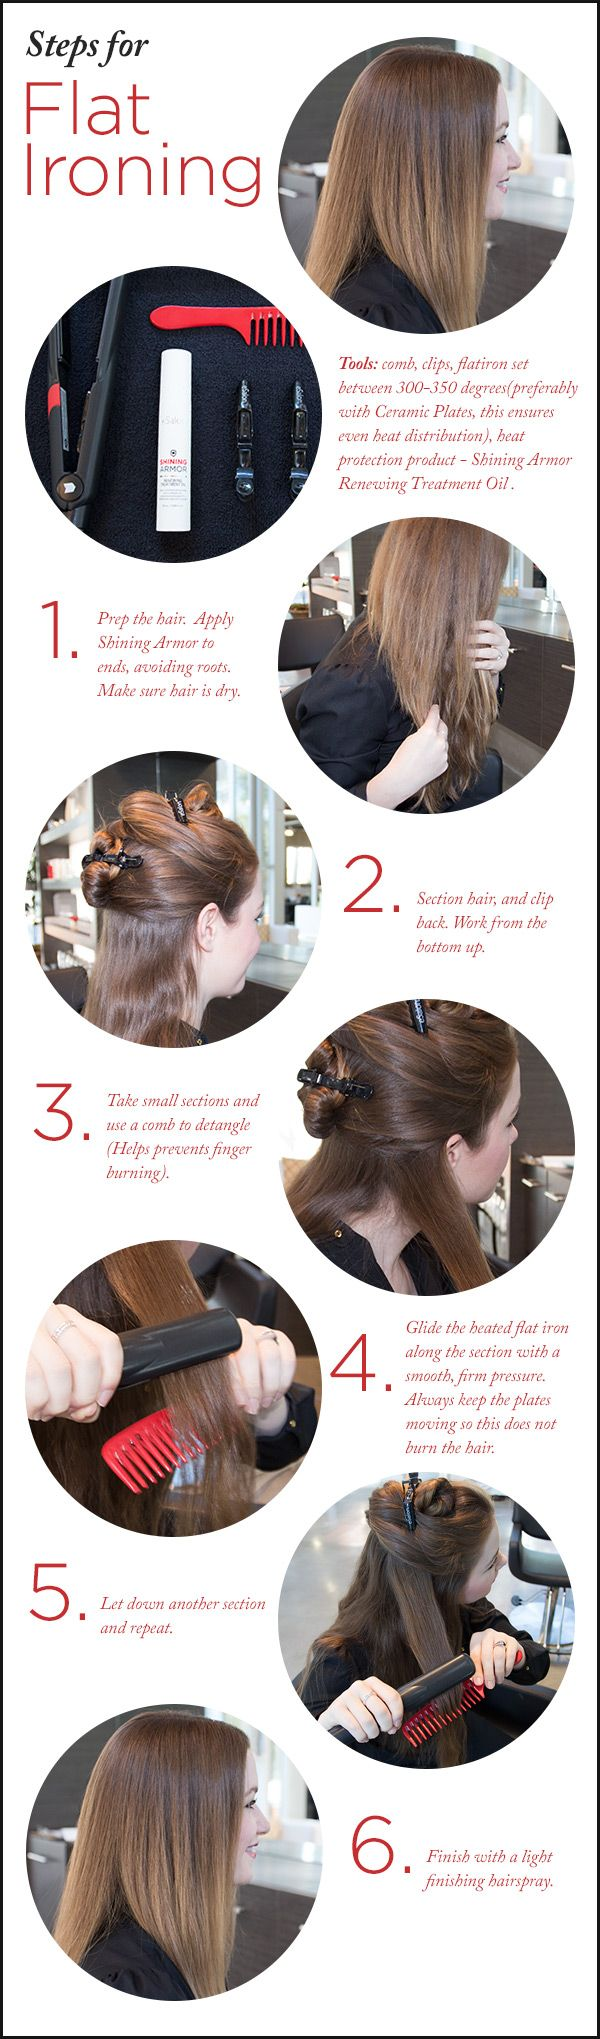 How to flat iron hair.